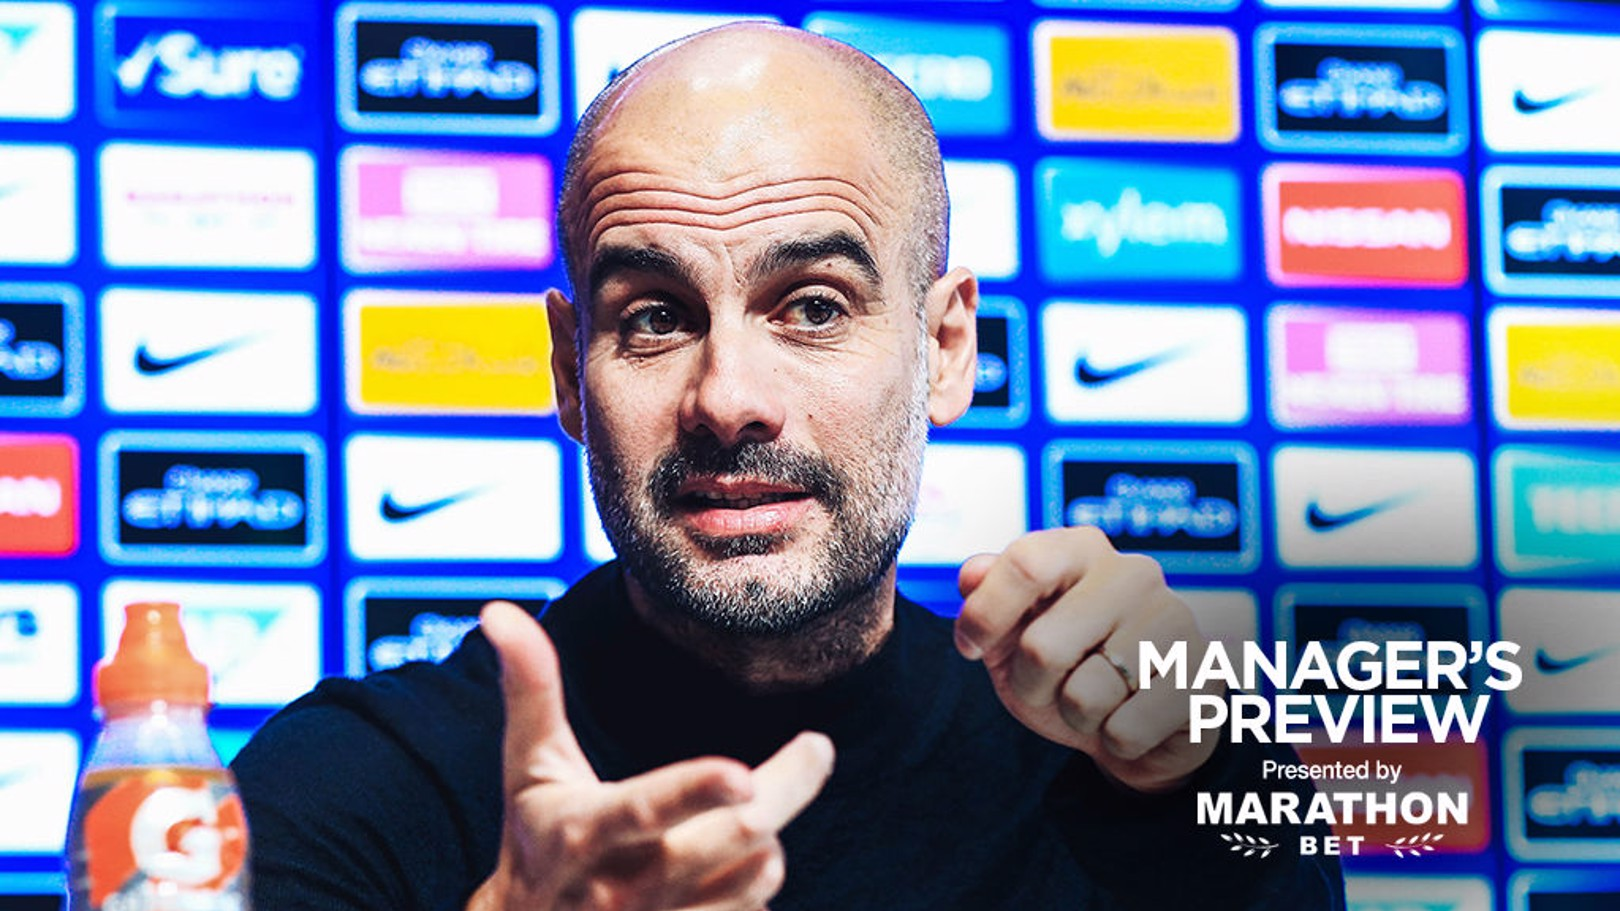 PEP TALK: The boss gives us a full update ahead of Sunday's game